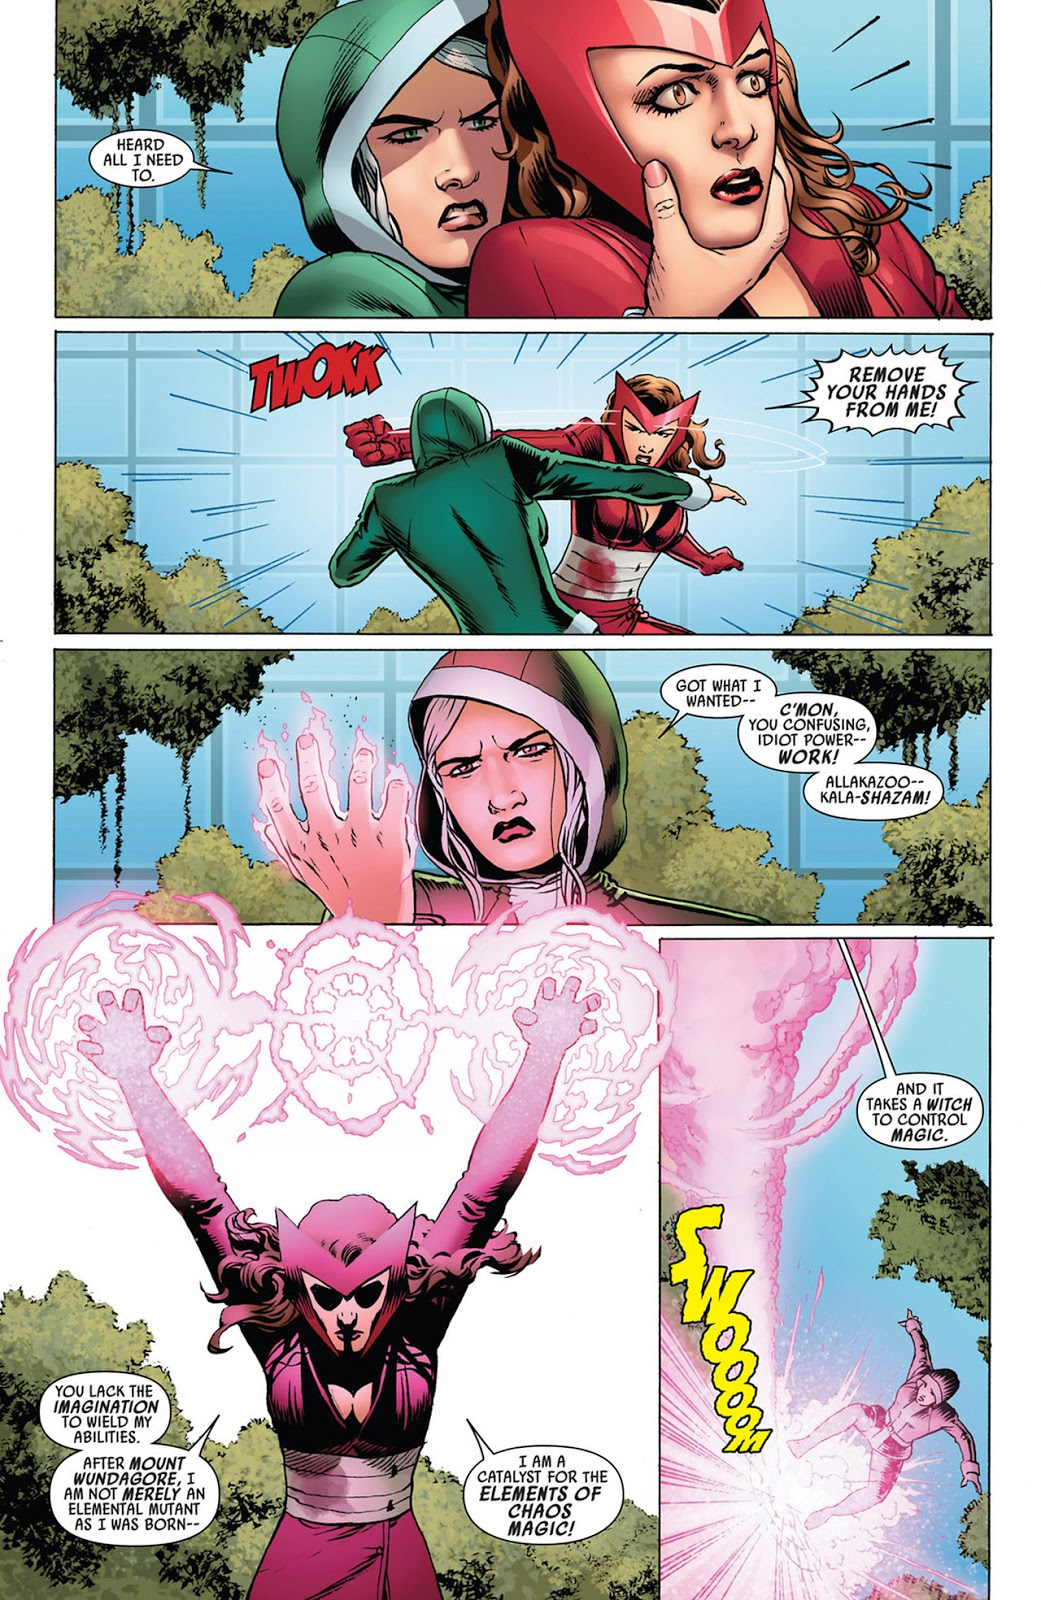 Scarlet Witch shows why she is more than just a mutantProperty of Marvel Comics